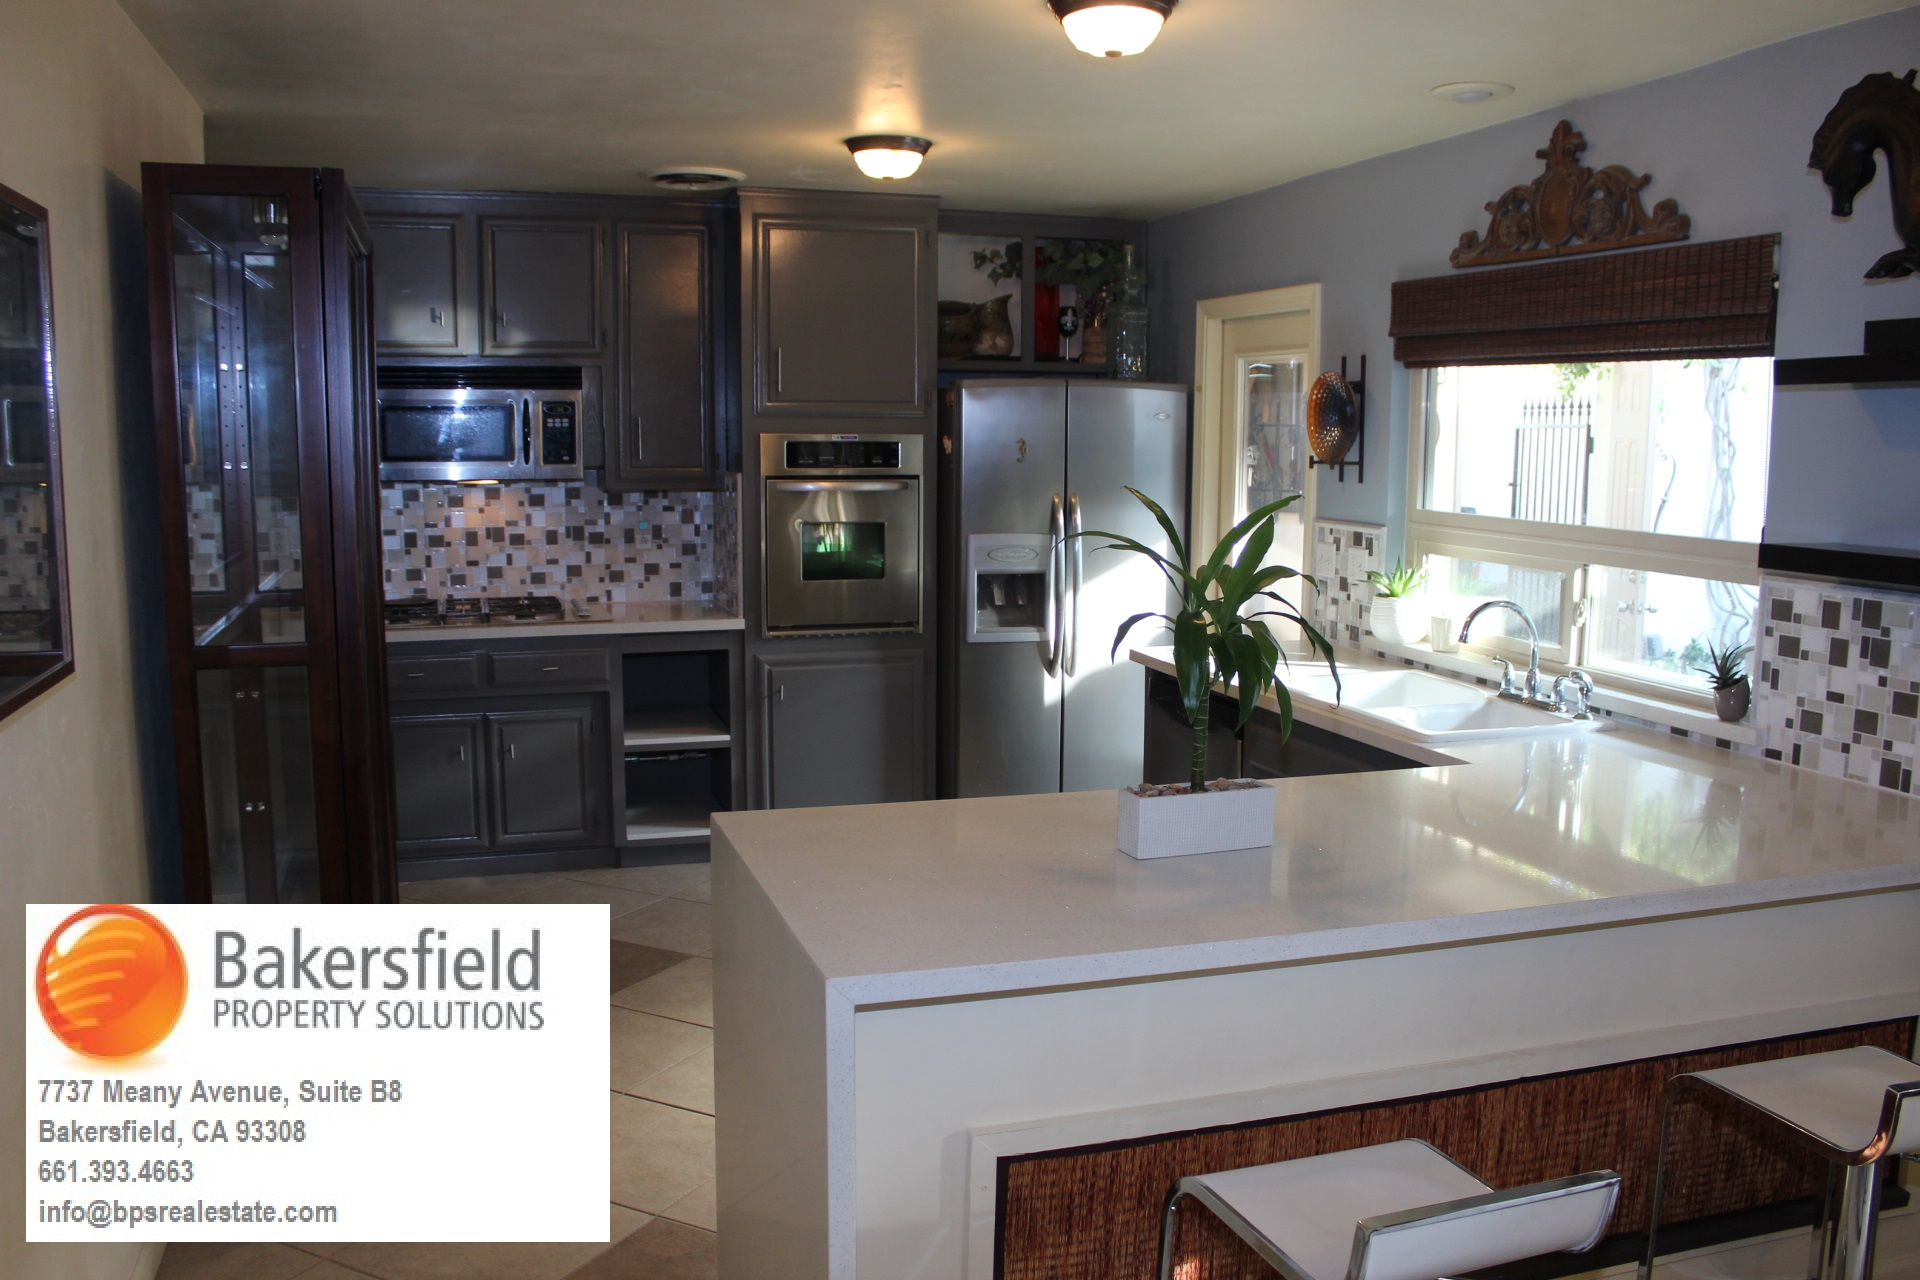 Search Bakersfield Homes